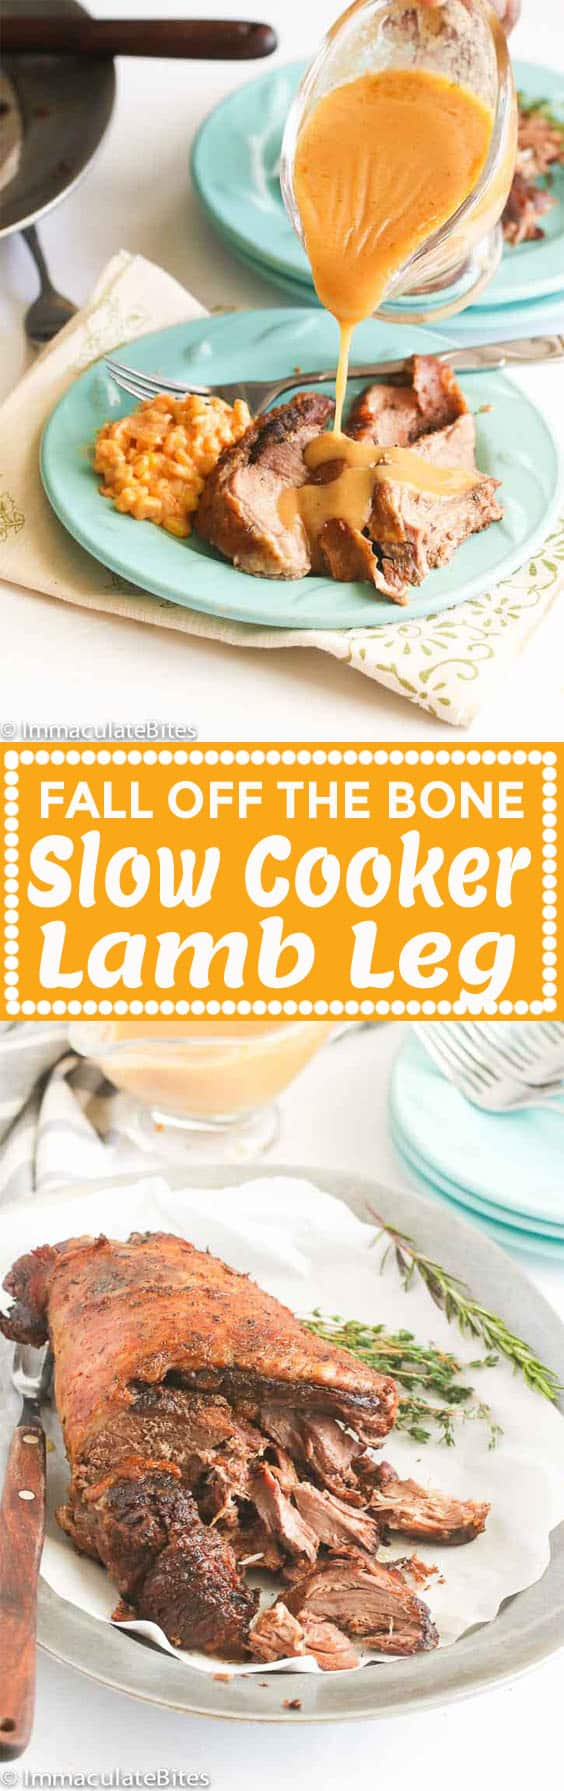 how to cook leg of lamb in slow cooker